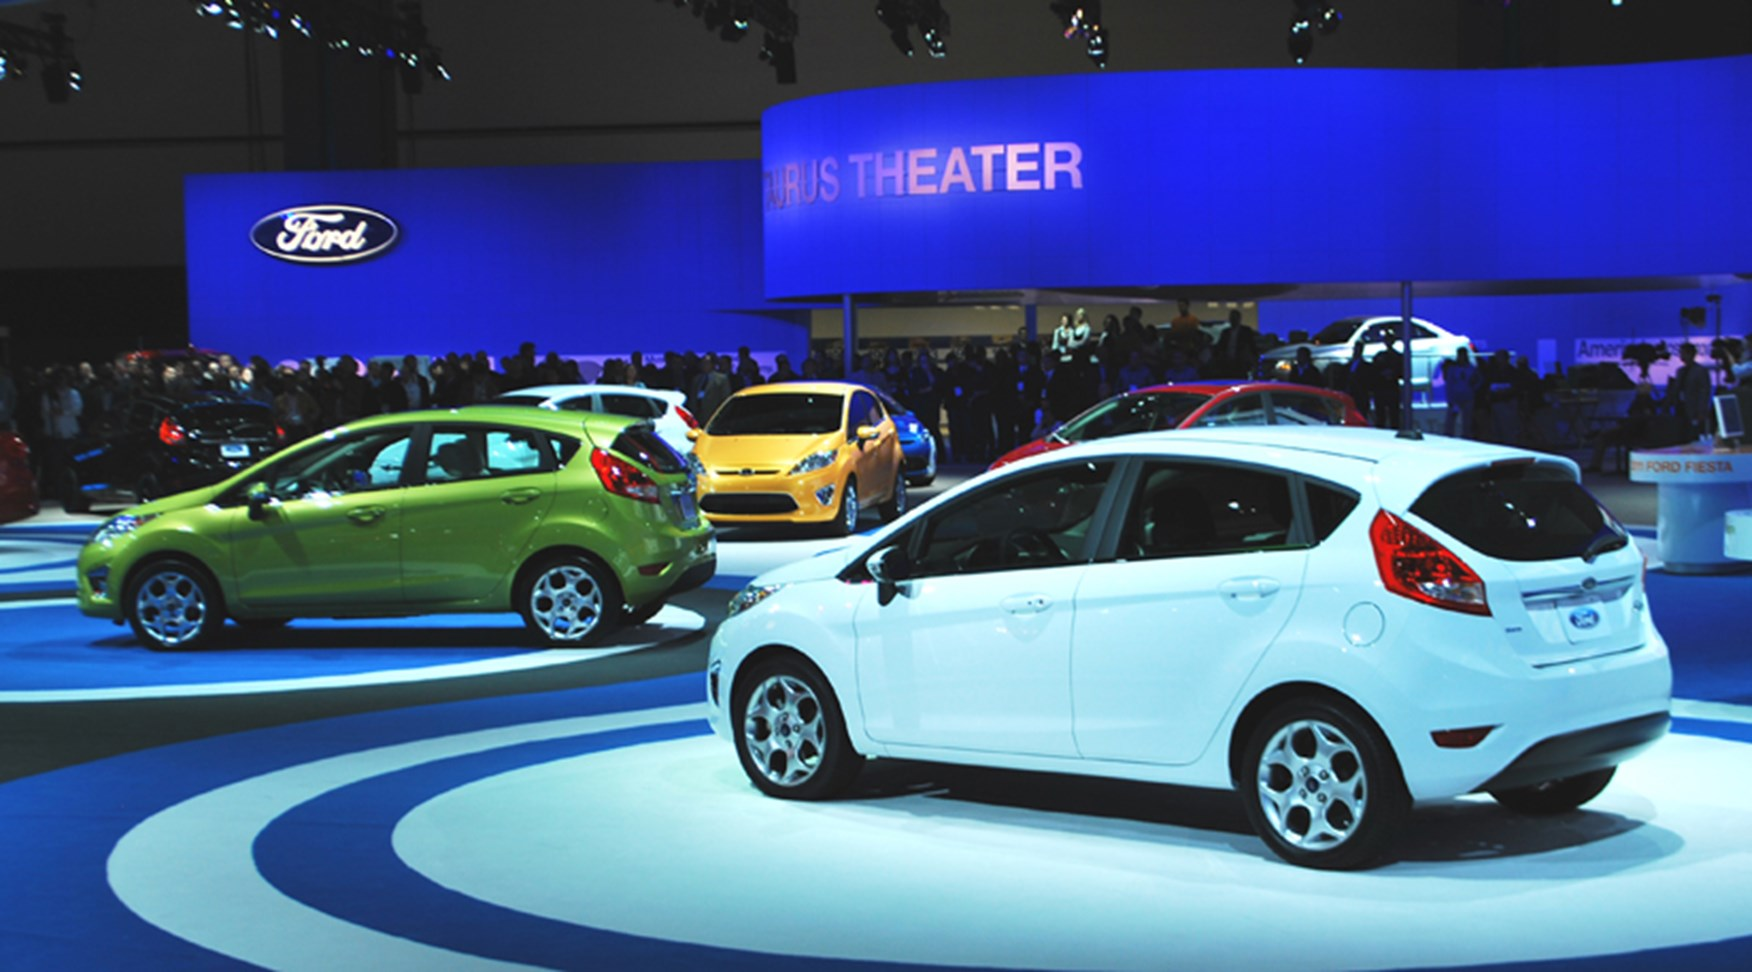 Los Angeles auto show 2009 photo gallery | CAR Magazine